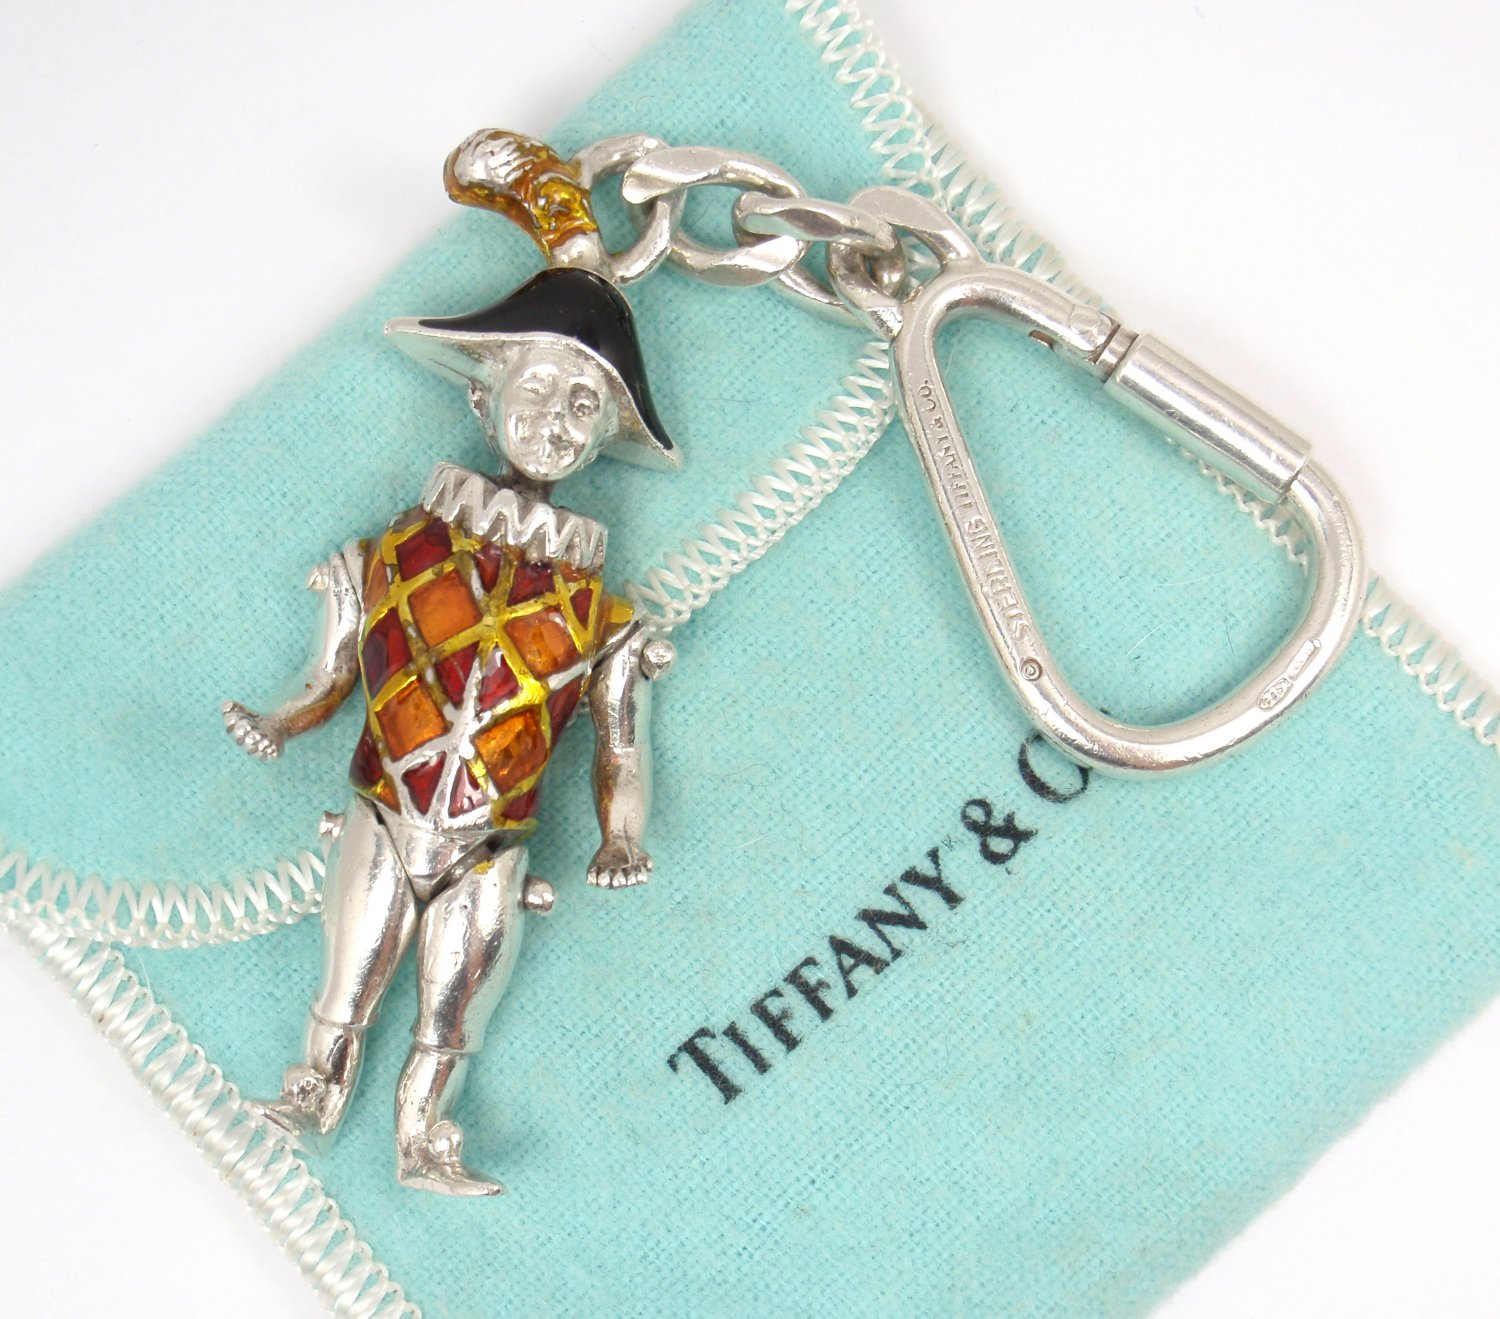 c9626e8f436 Tiffany & Co Gene Moore Sterling Silver Enamel Harlequin Keyring Keychain  ITALY